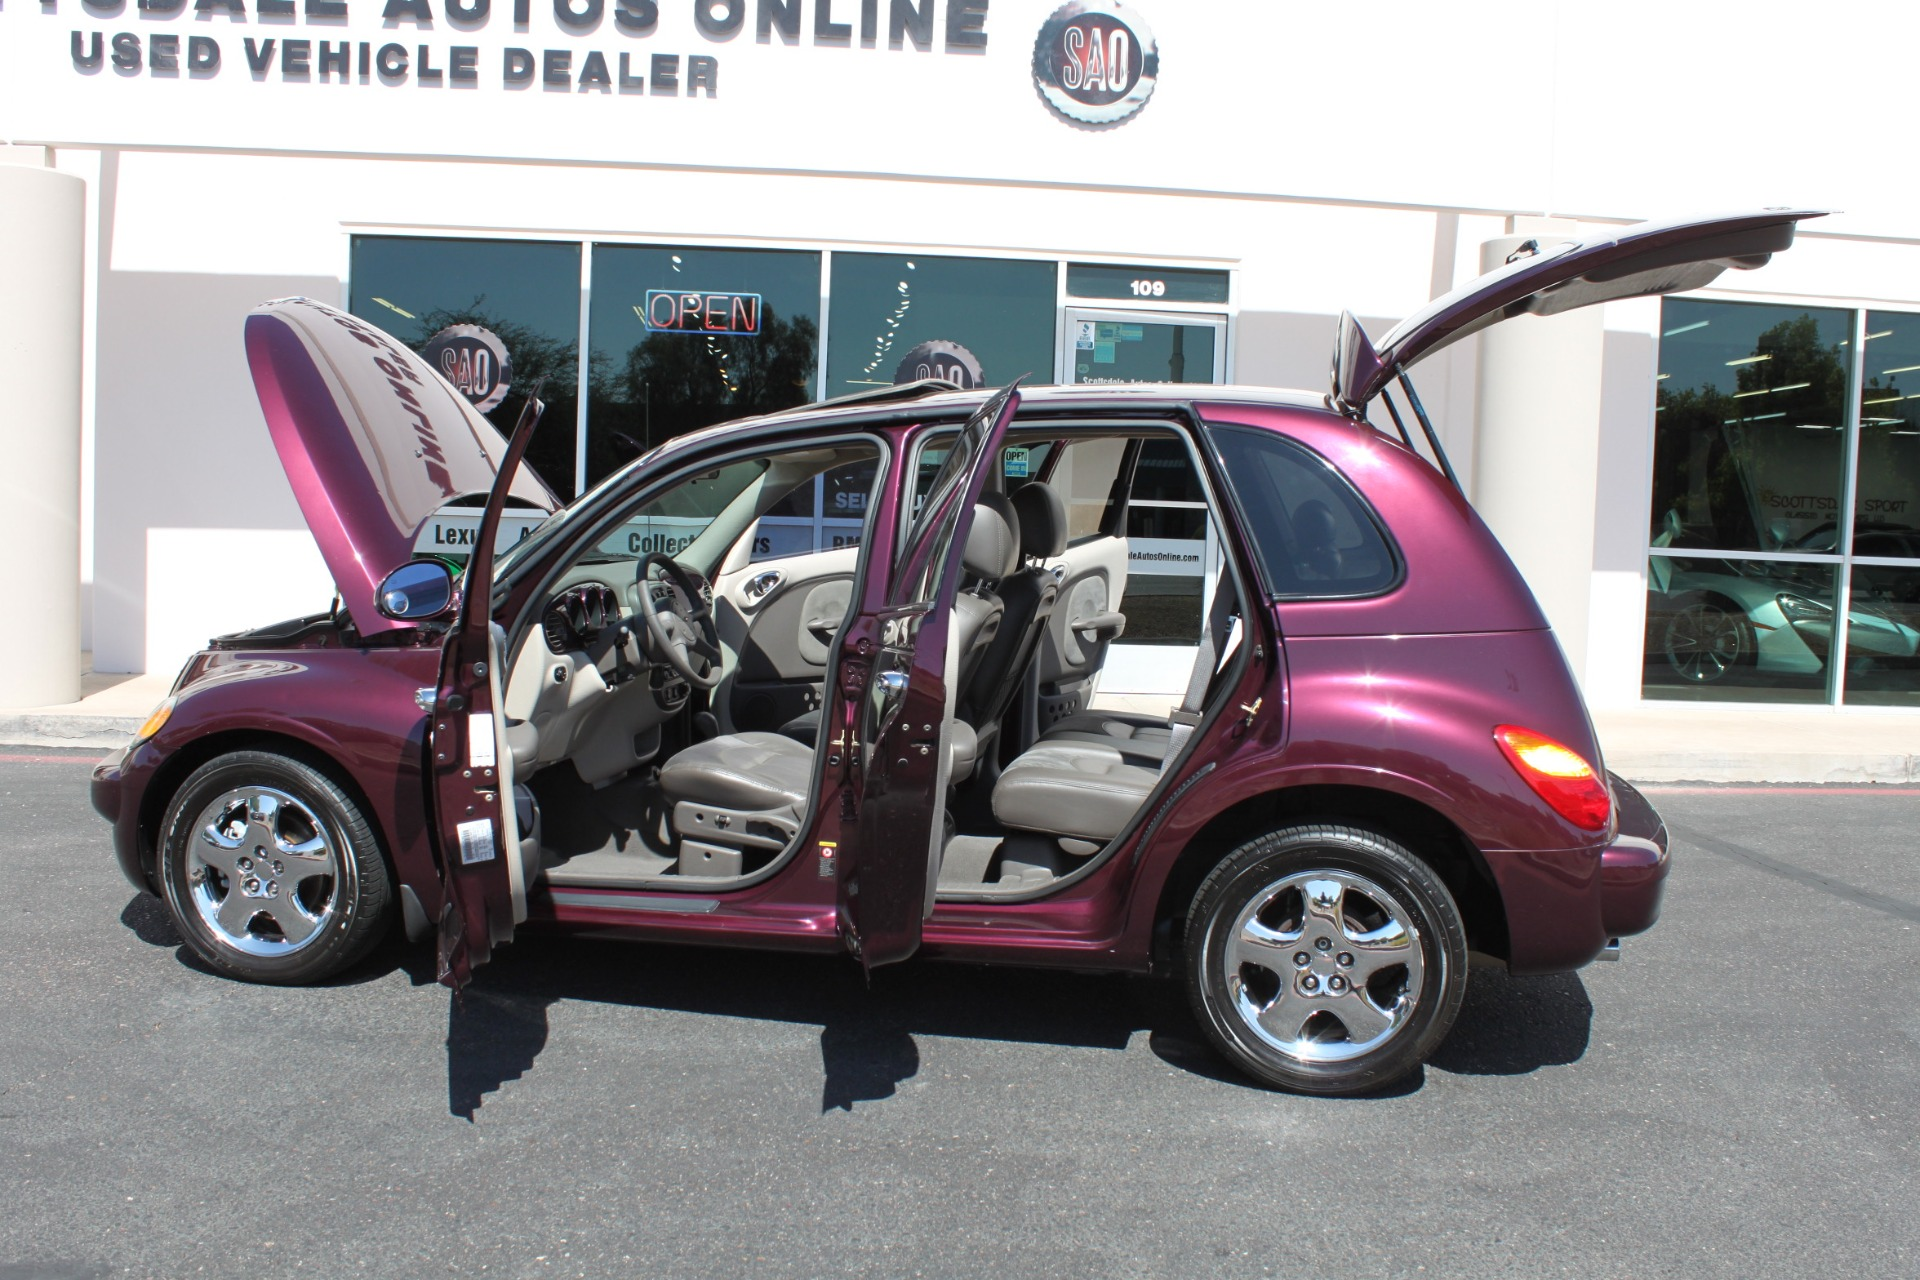 Used-2002-Chrysler-PT-Cruiser-Limited-LS400